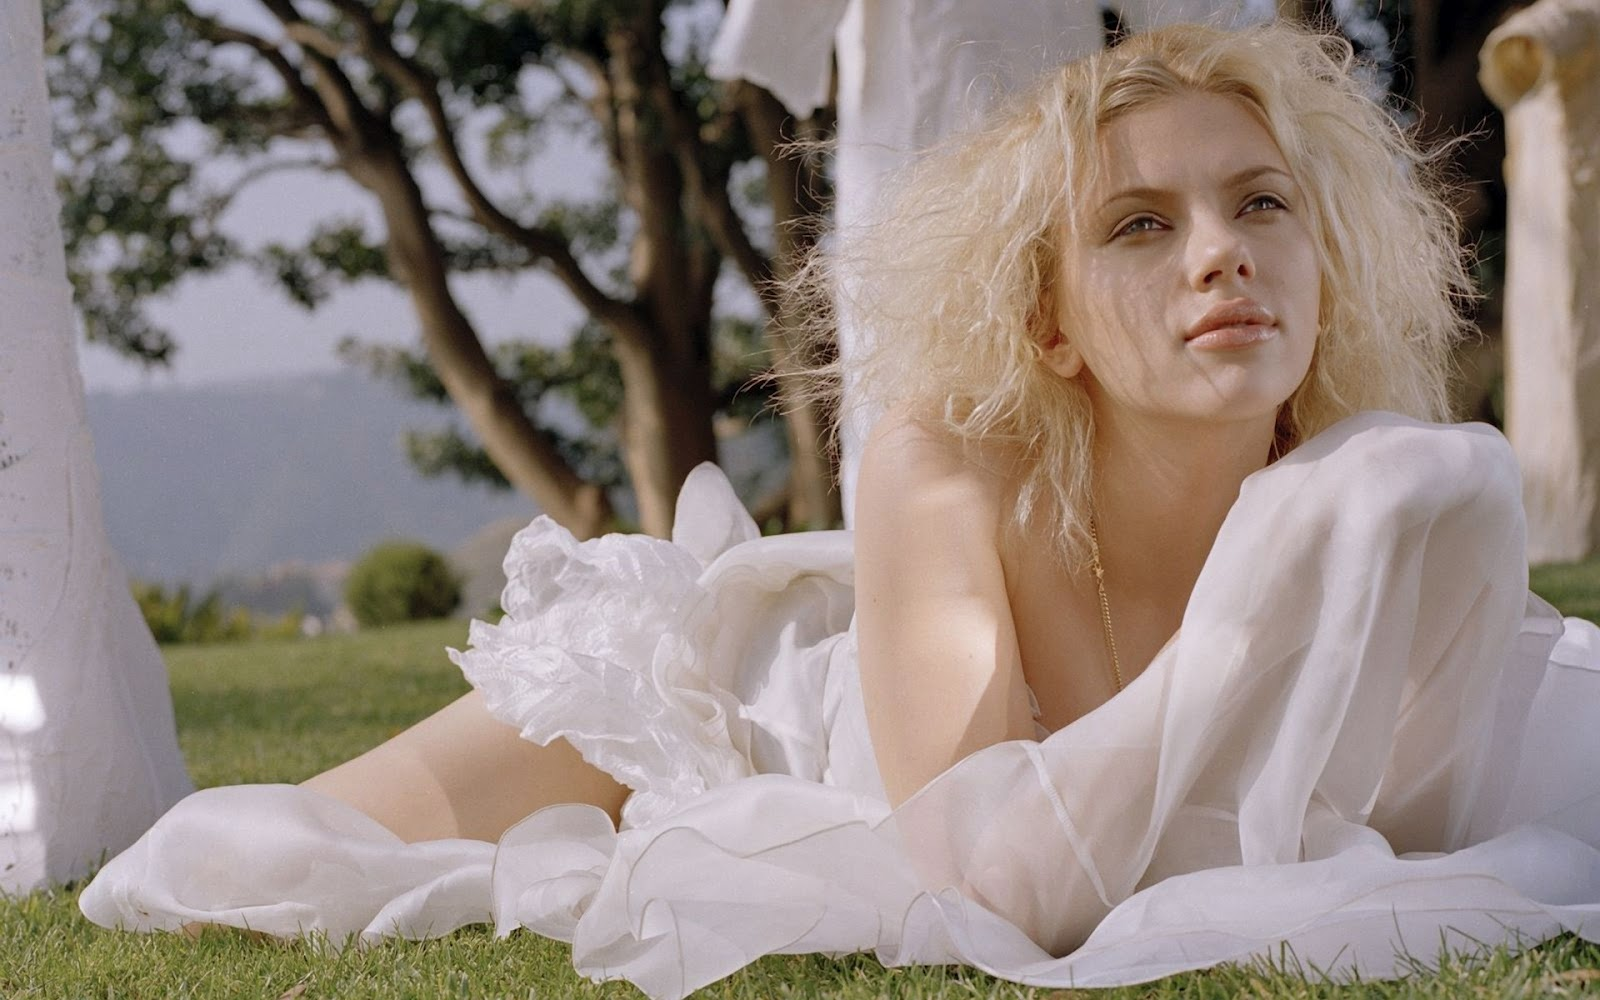 Scarlett johansson hd Wallpaper 10 With 1600 x 1000 Resolution ( 204kB )